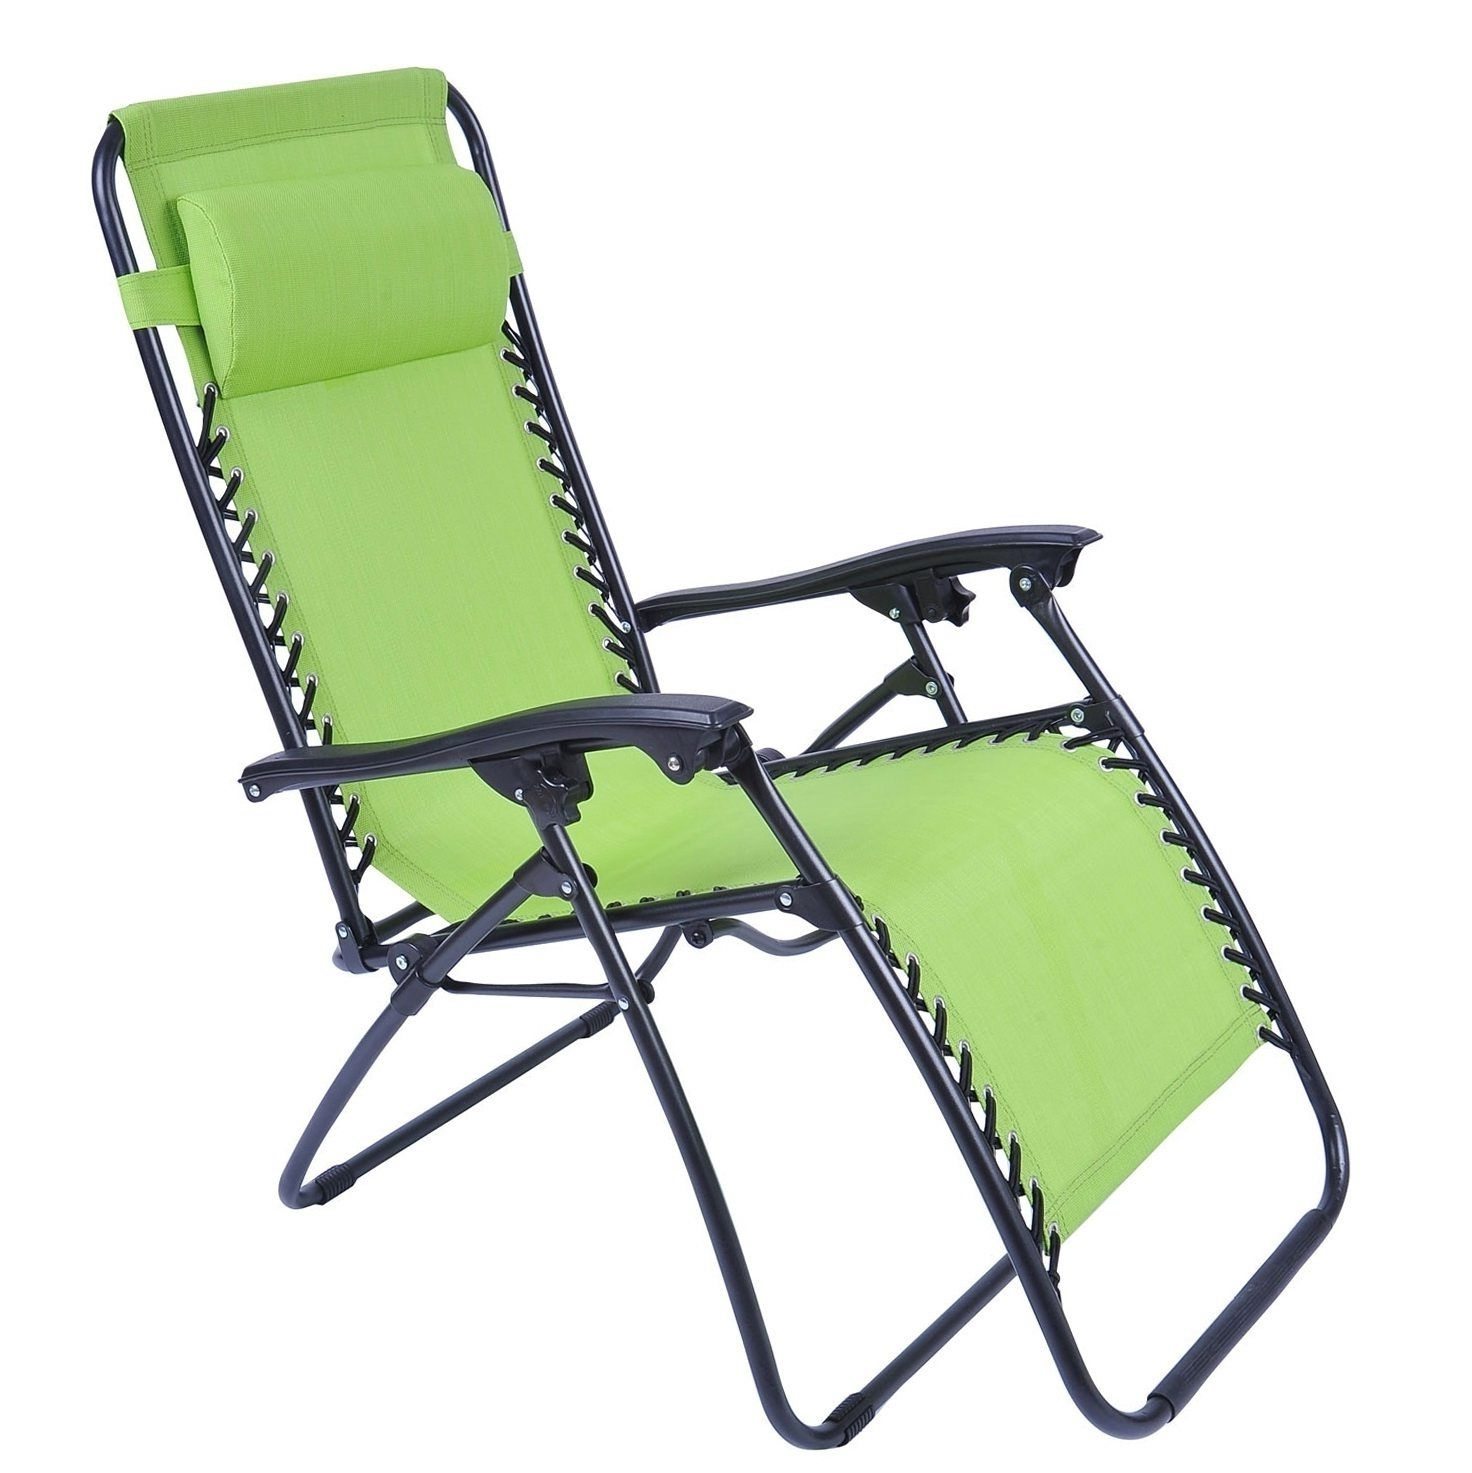 Chaise Lounge Folding Chairs In Recent Lounge Chair Outdoor Folding Folding Chaise Lounge Chair Patio (View 7 of 15)